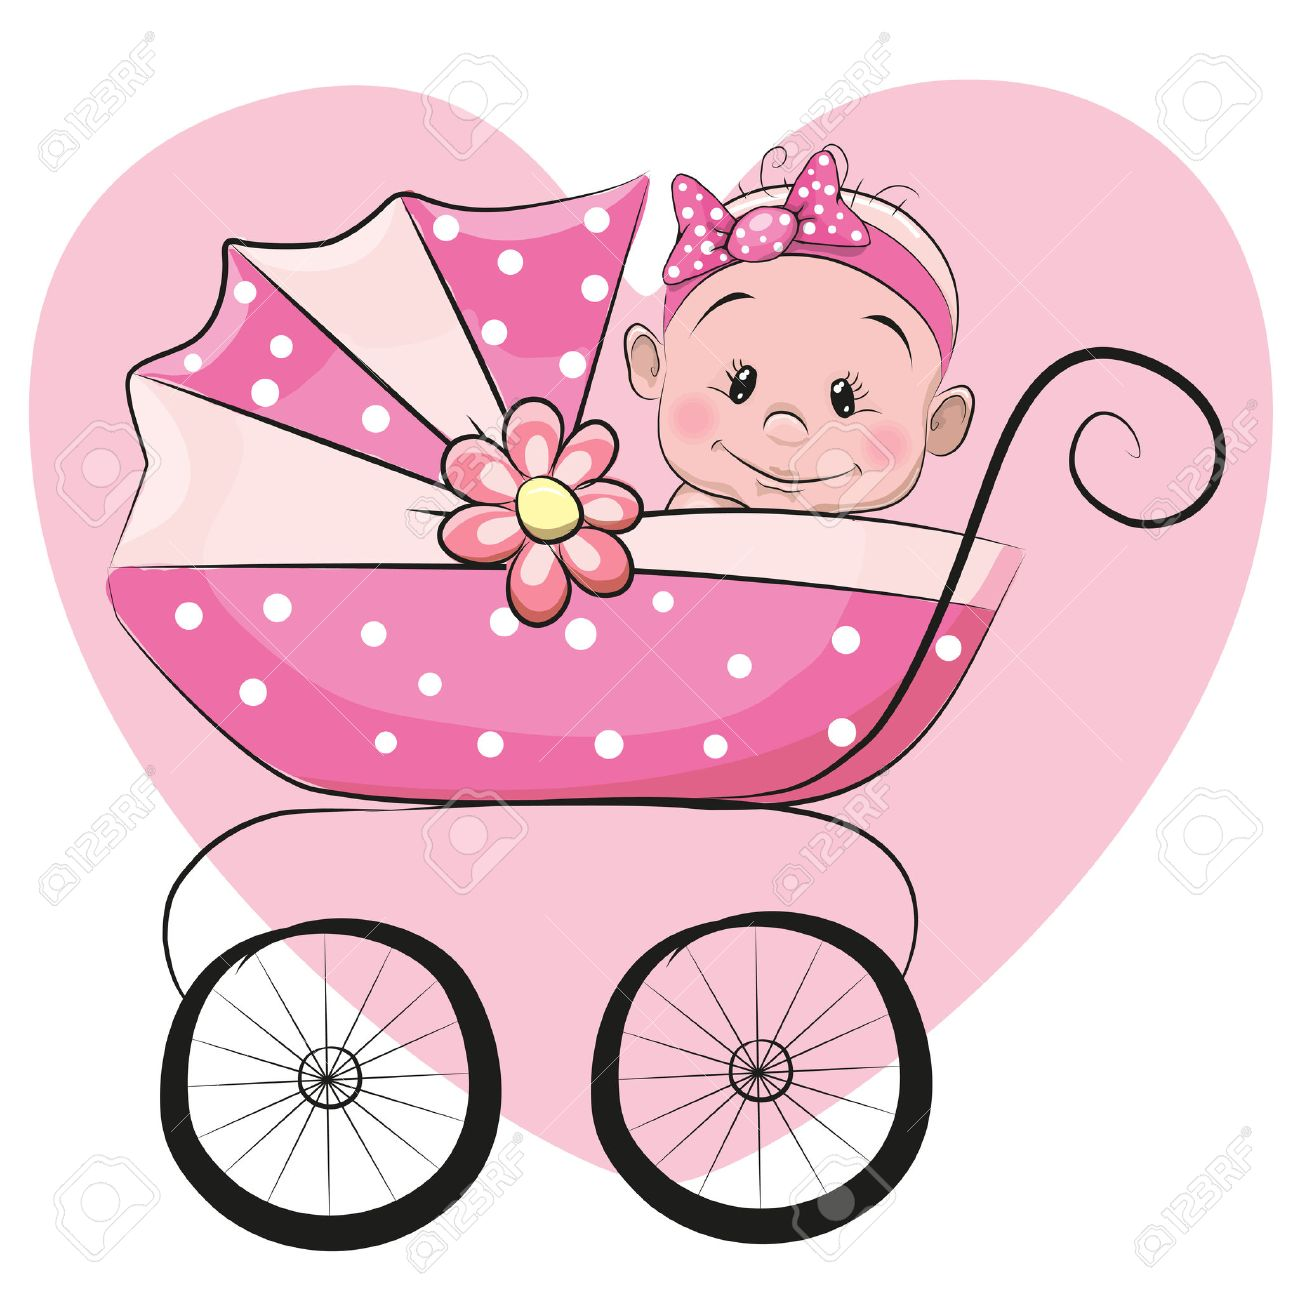 Cute Cartoon Baby Girl Is Sitting On A Carriage On A Heart Background Royalty Free Cliparts Vectors And Stock Illustration Image 44206126